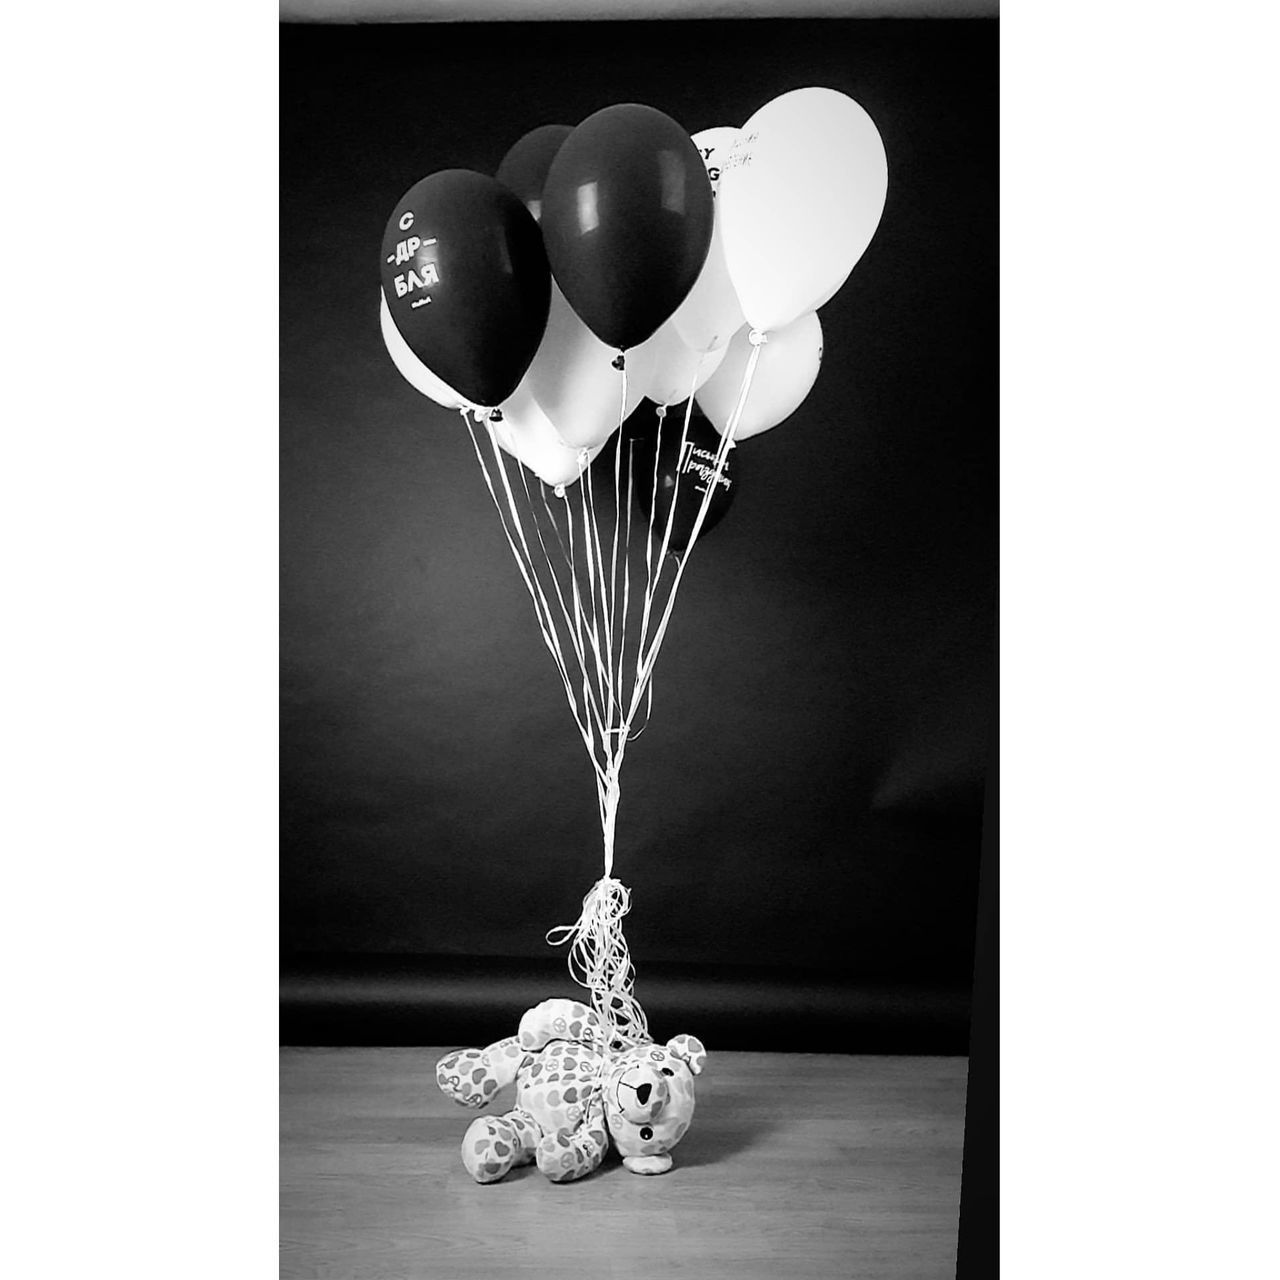 CLOSE-UP OF BALLOONS IN GLASS ON TABLE